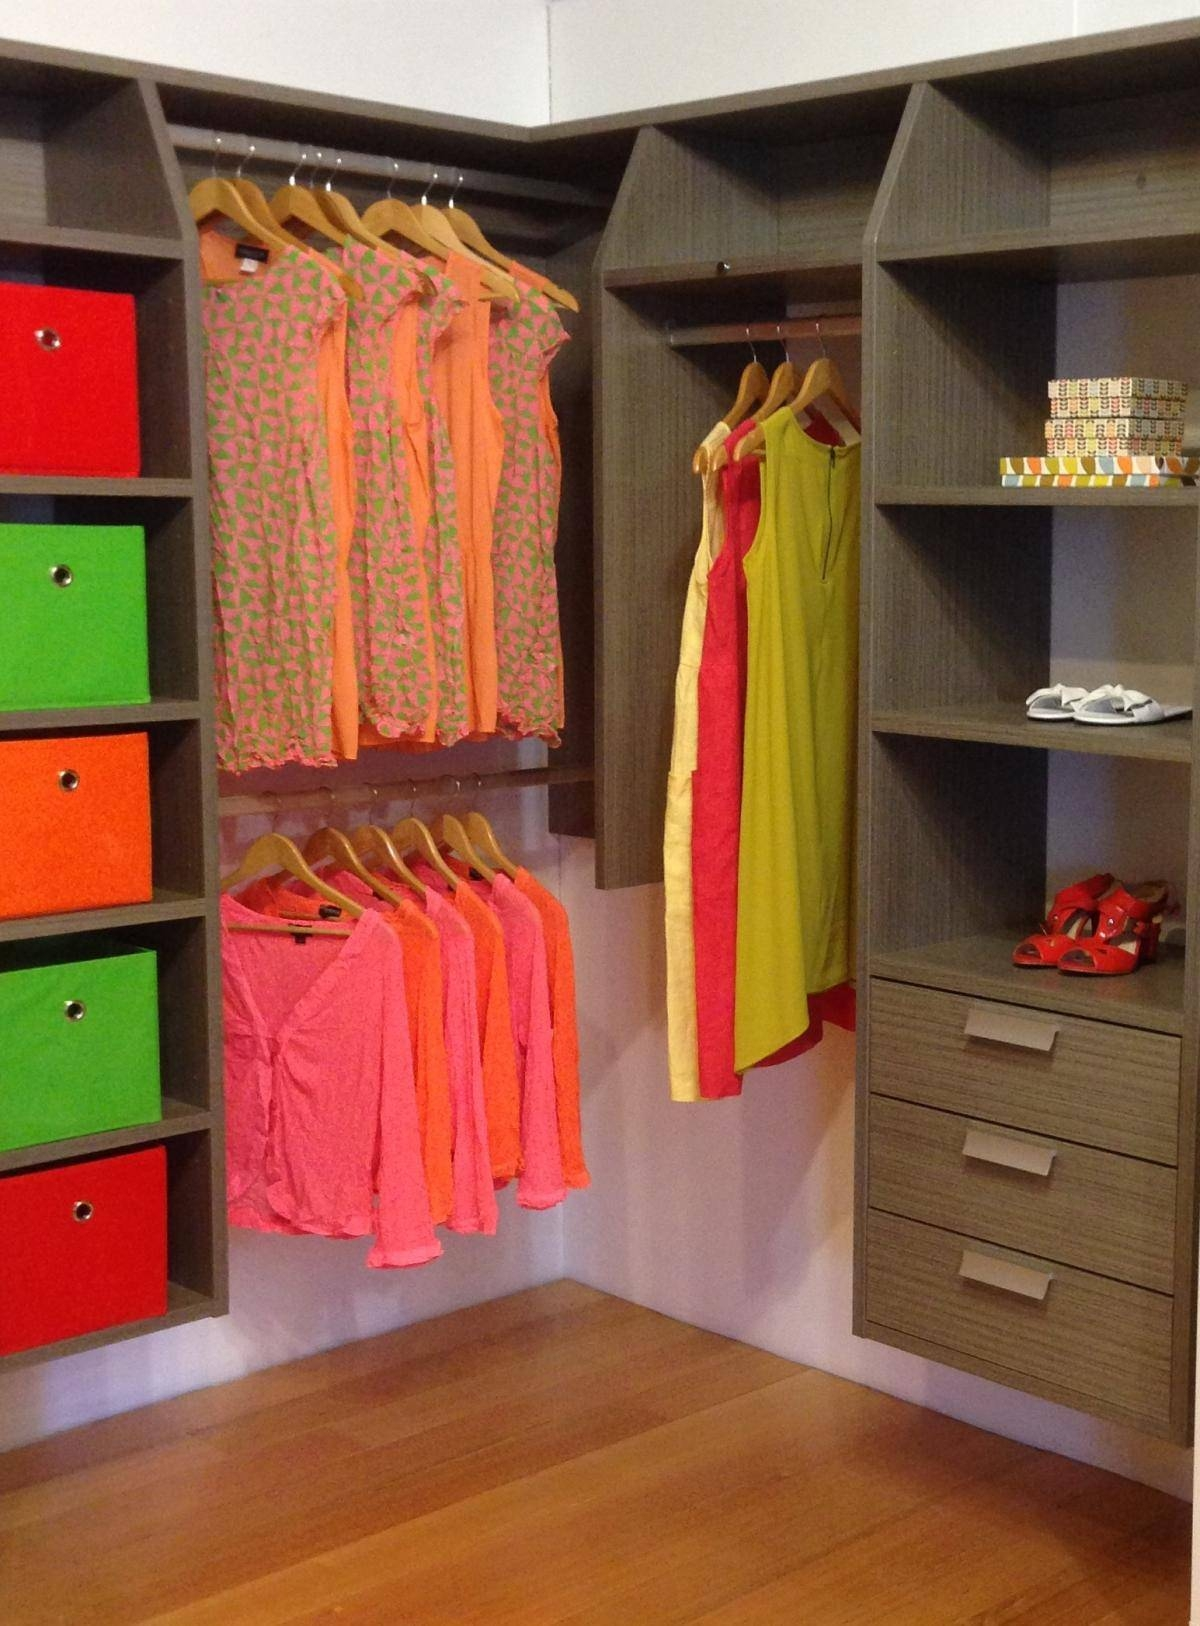 Gallery | Simply Wardrobes intended for Single Wardrobe With Drawers And Shelves (Image 17 of 30)